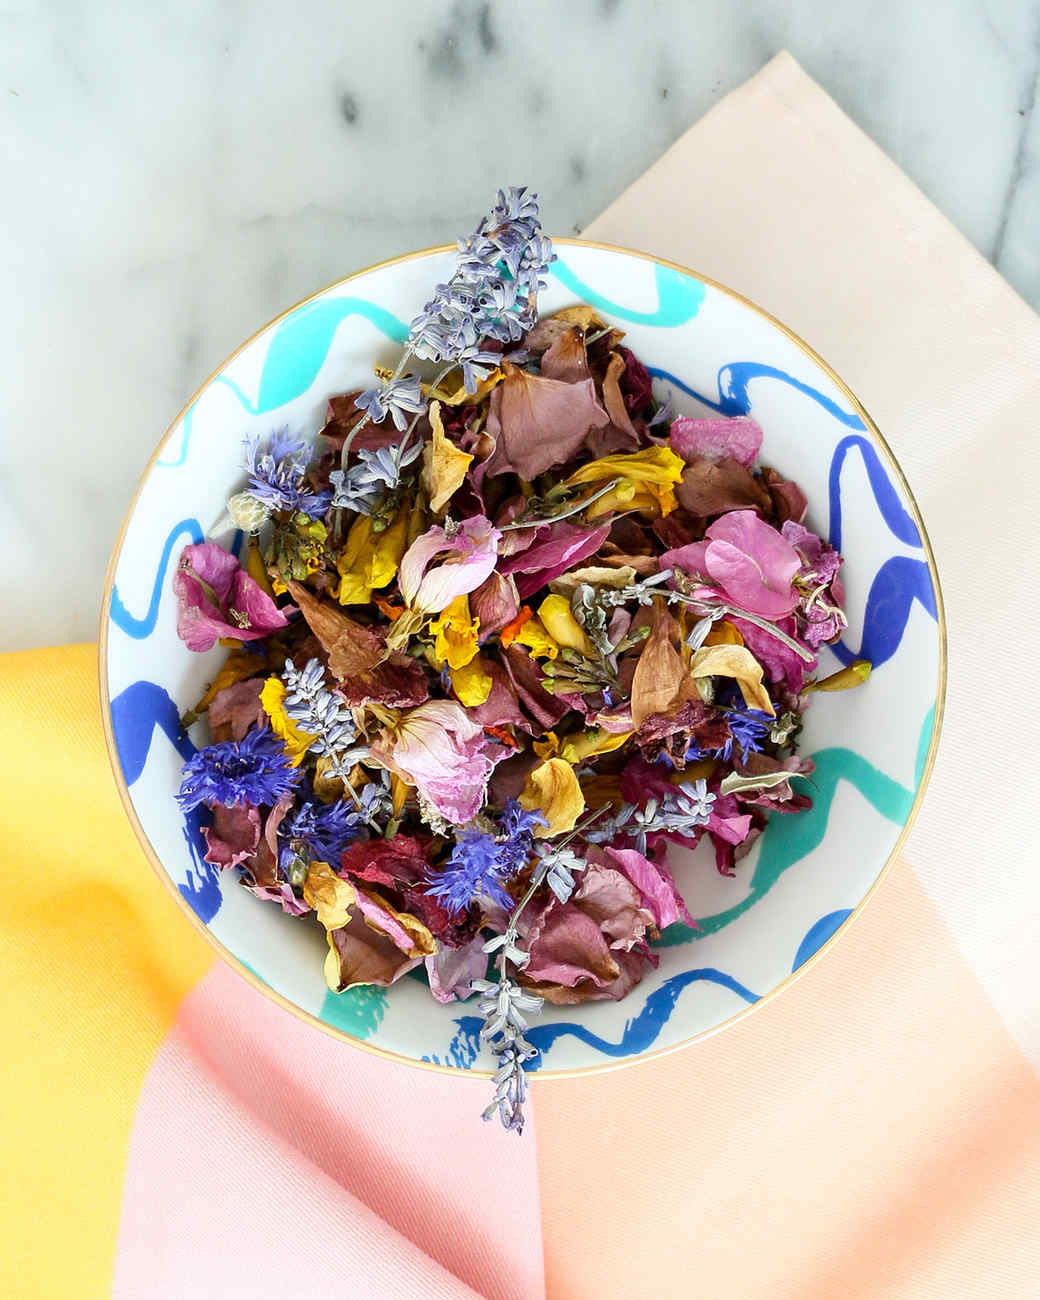 ornate bowl of potpourri